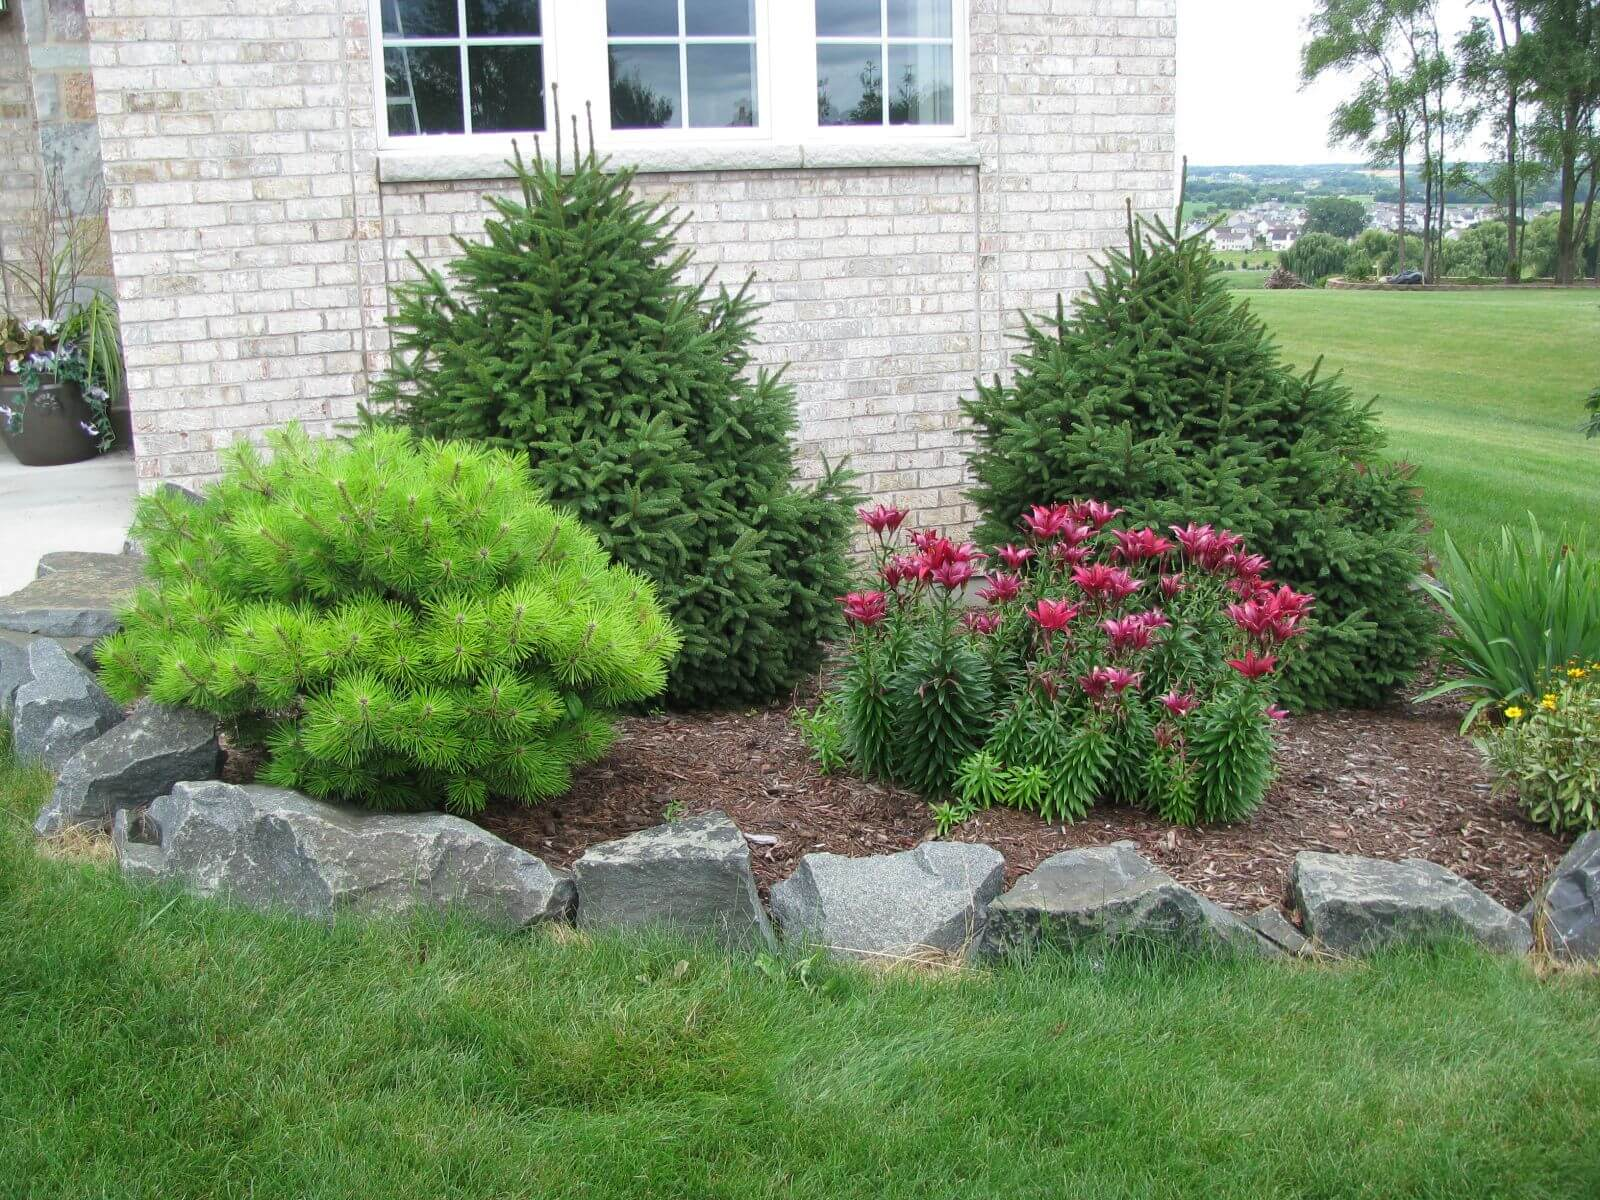 Bushes and flowers with natural rock edges